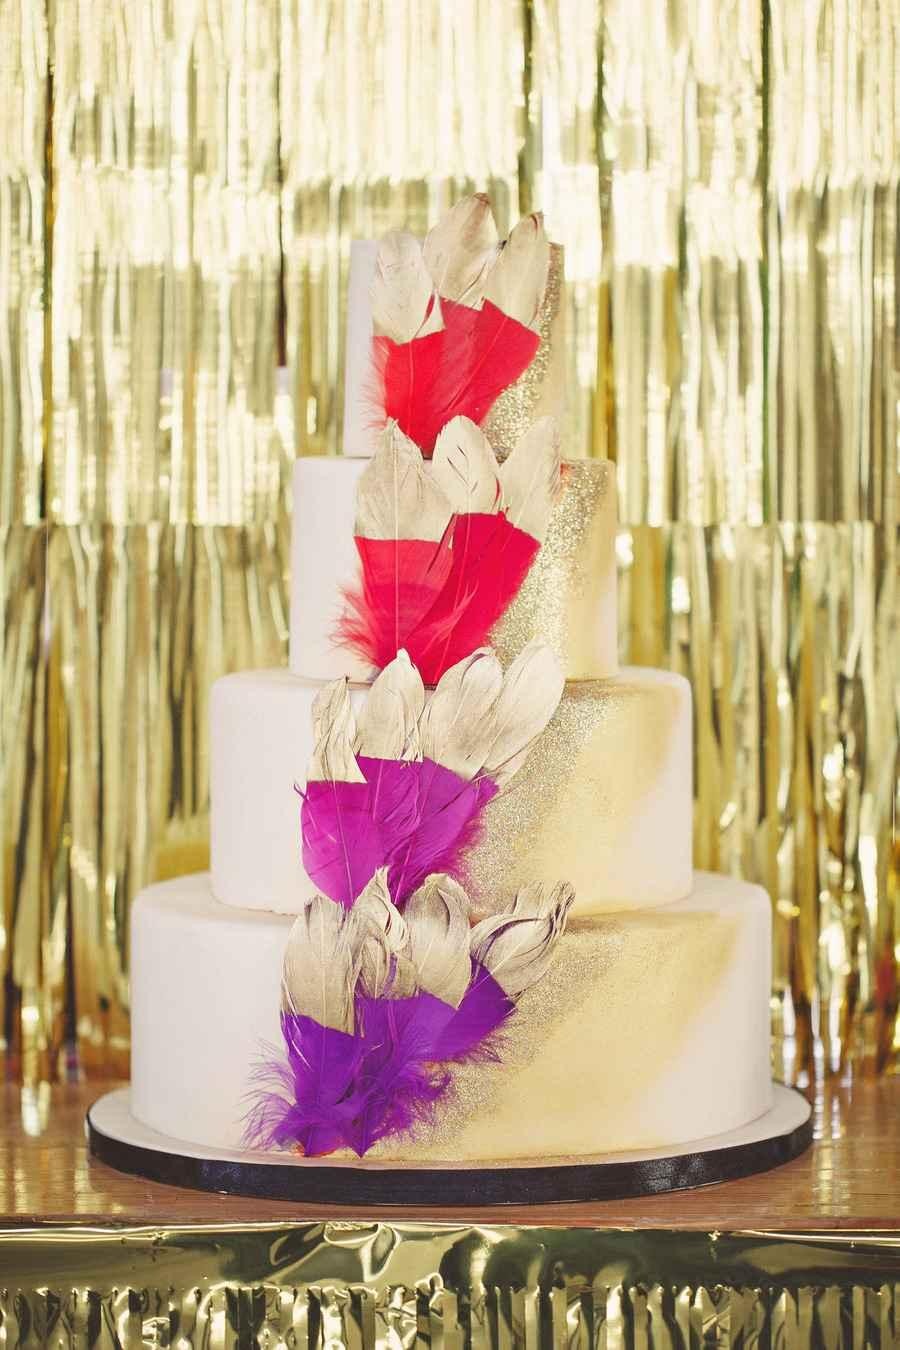 Golden wedding decoration: 60 ideas with photos to inspire 19